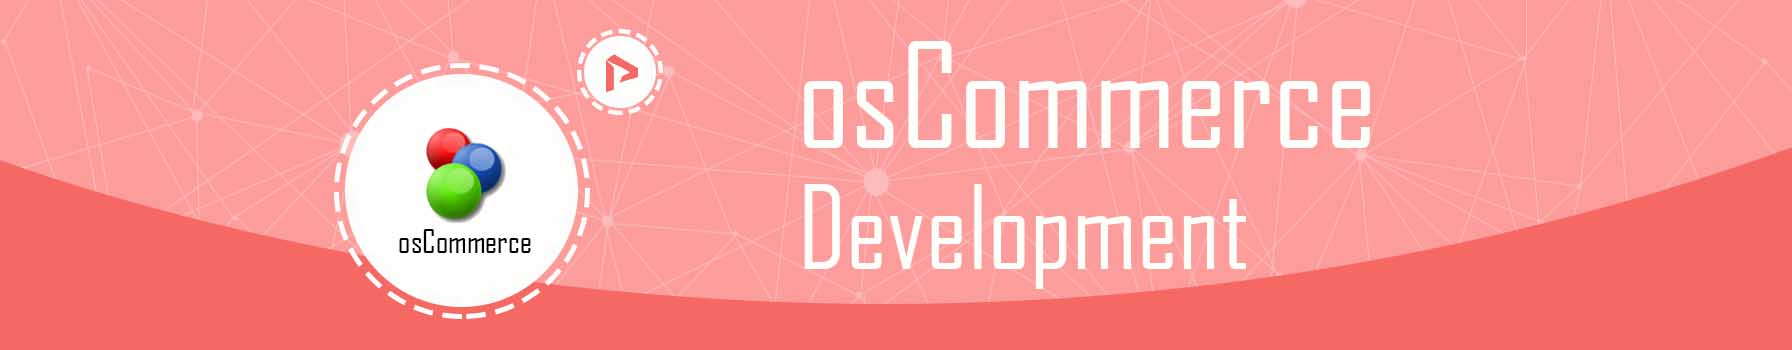 oscommerce-development.jpg